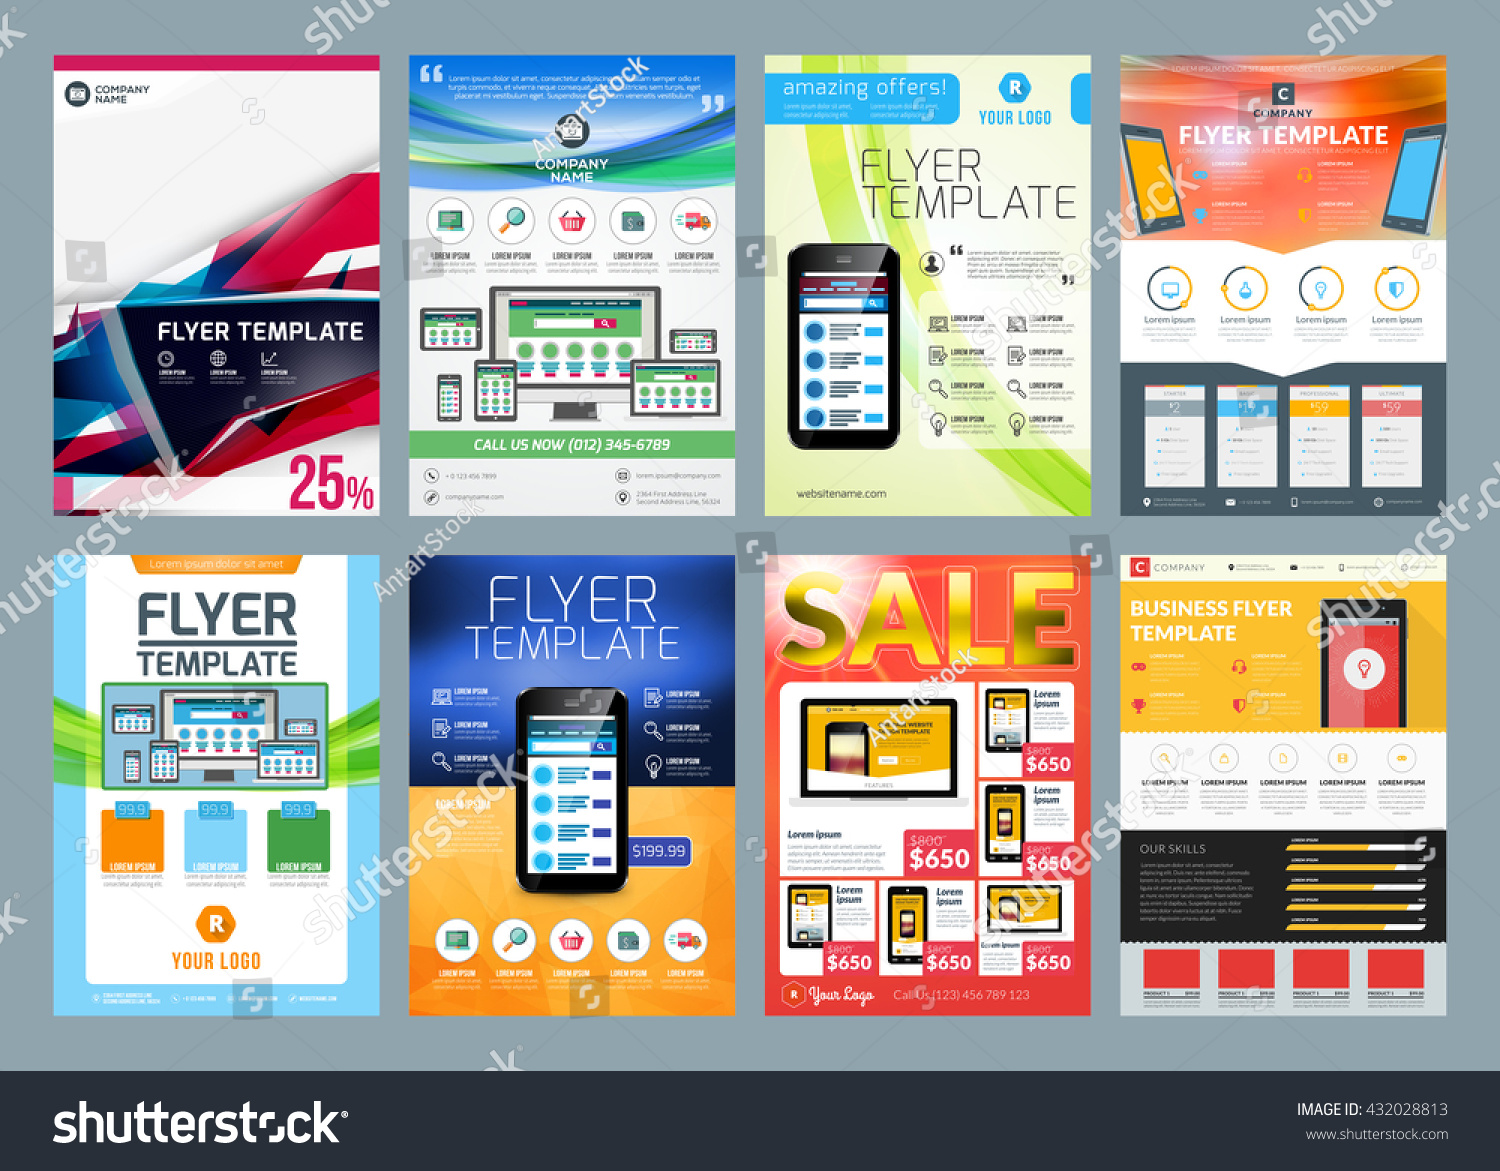 Set vector business flyer design templates stock vector royalty set of vector business flyer design templates design templates for brochures flyers mobile cheaphphosting Gallery